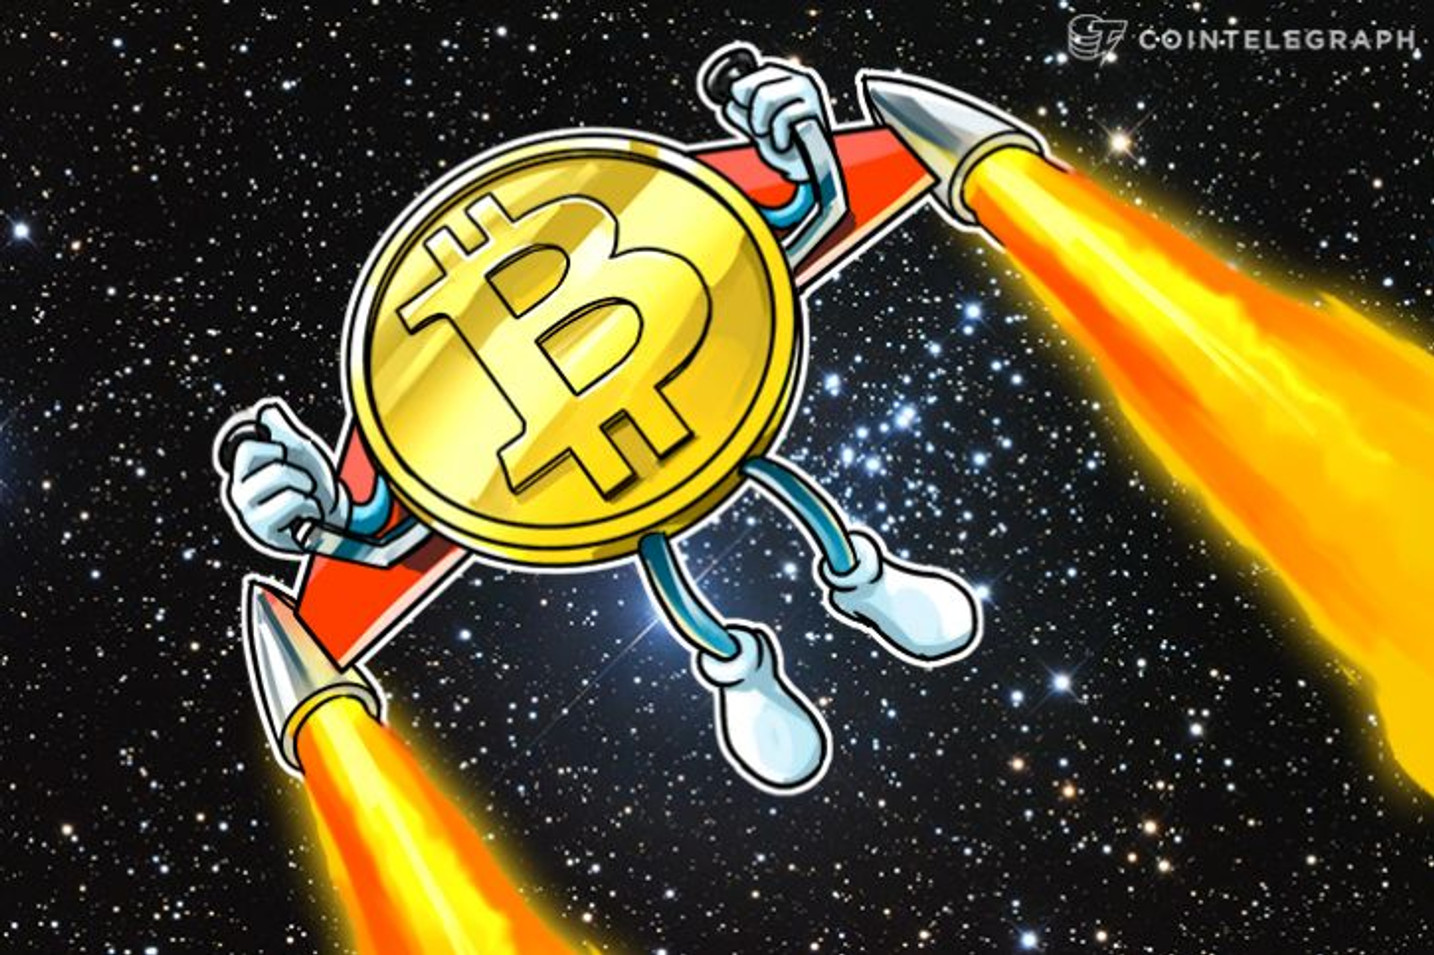 Bitcoin 'Going To Moon,' Could Reach $1 Billion: FOX News